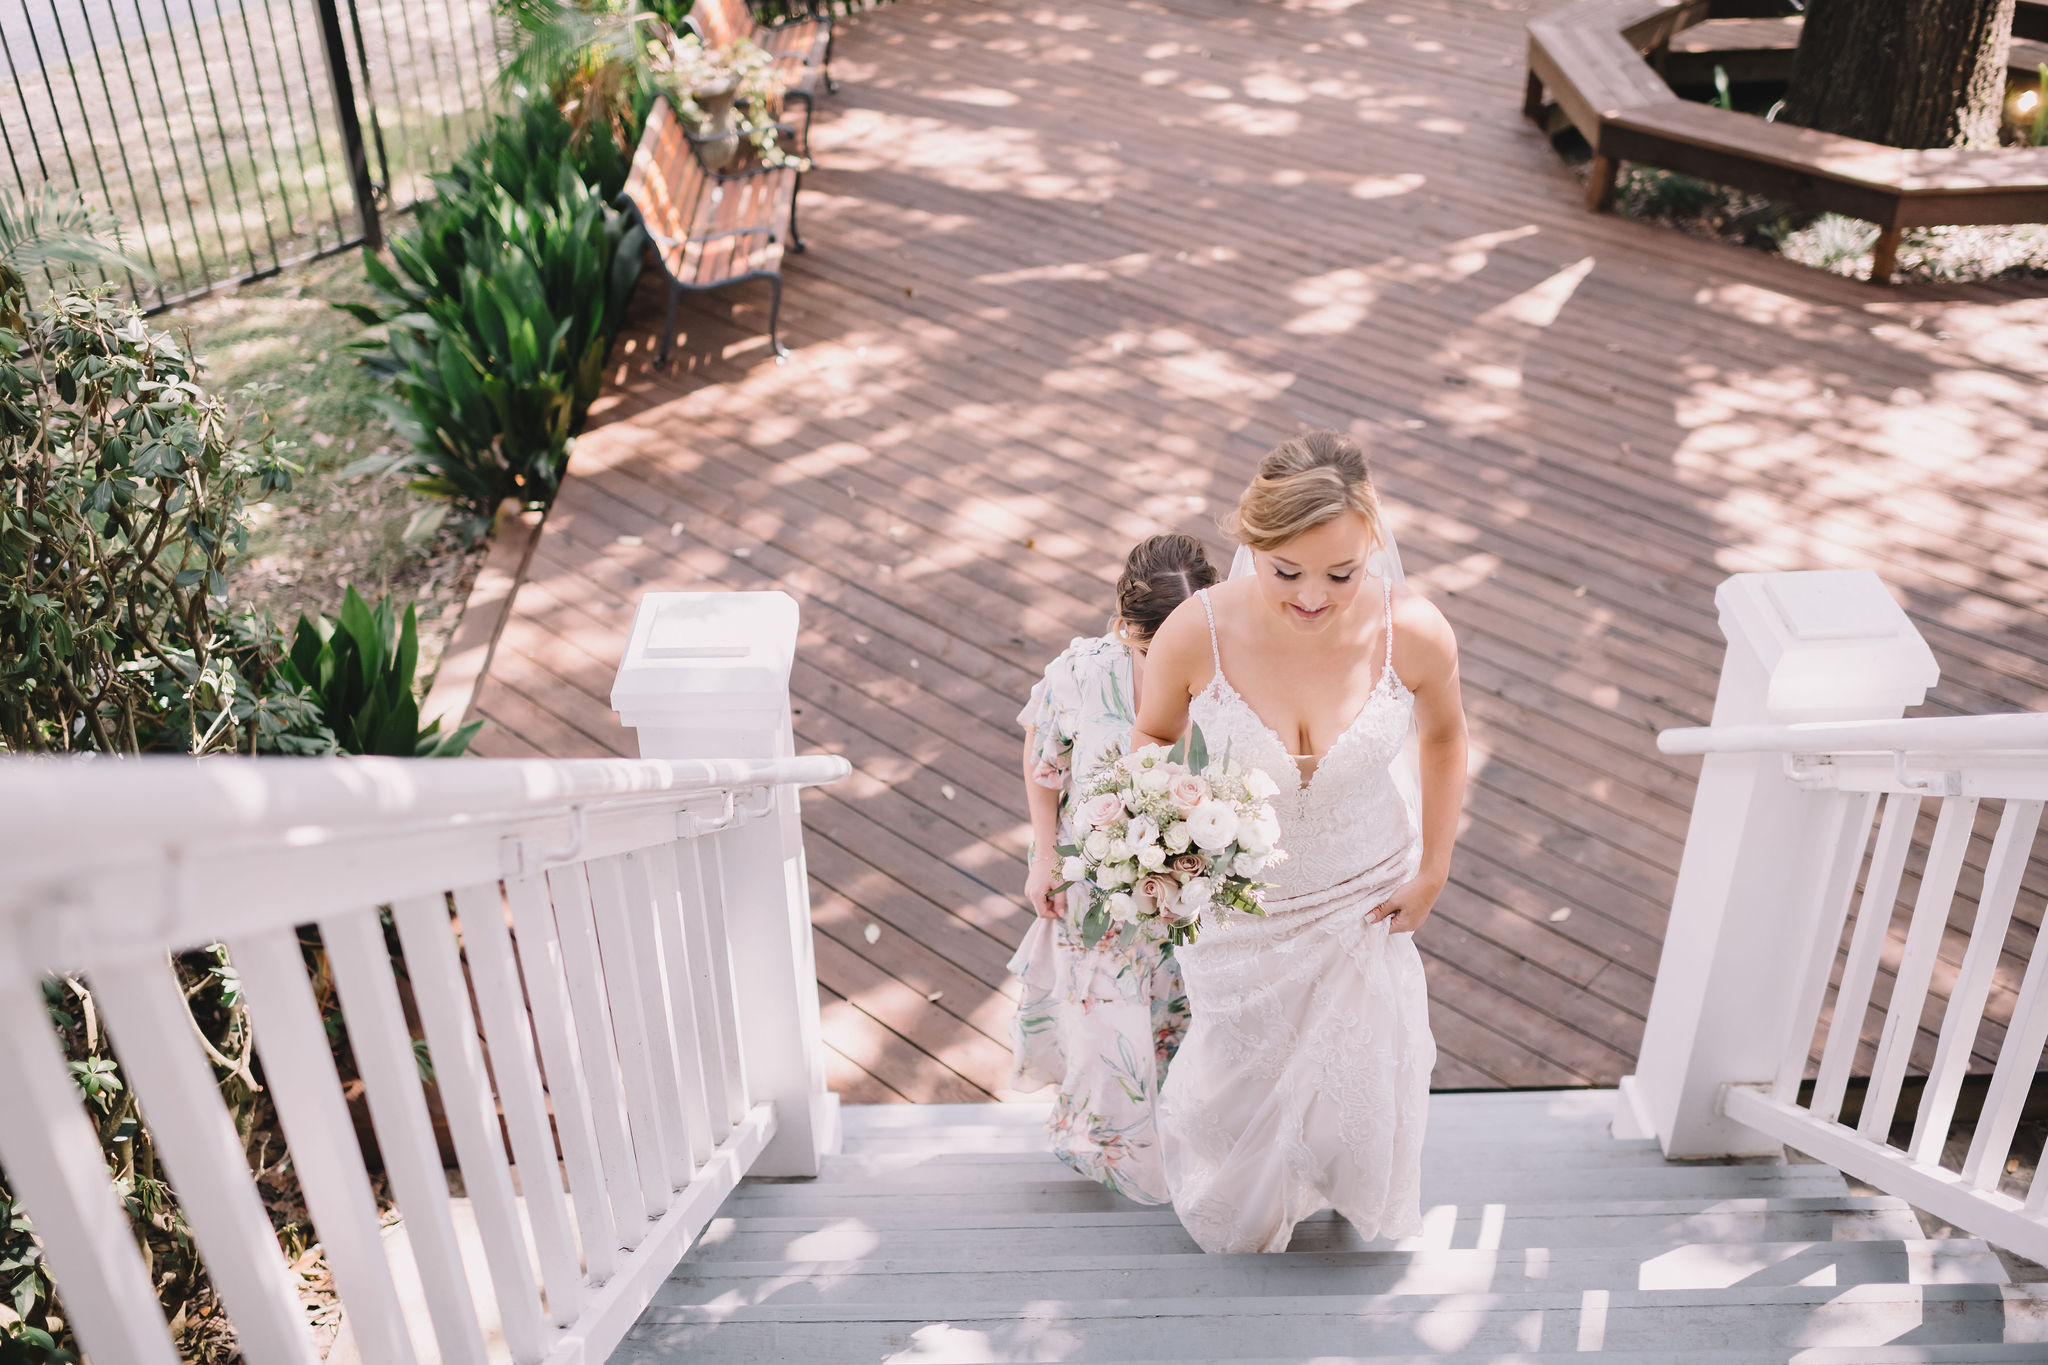 Rachel walks up the steps at Compass Point for the first look on the wedding day.